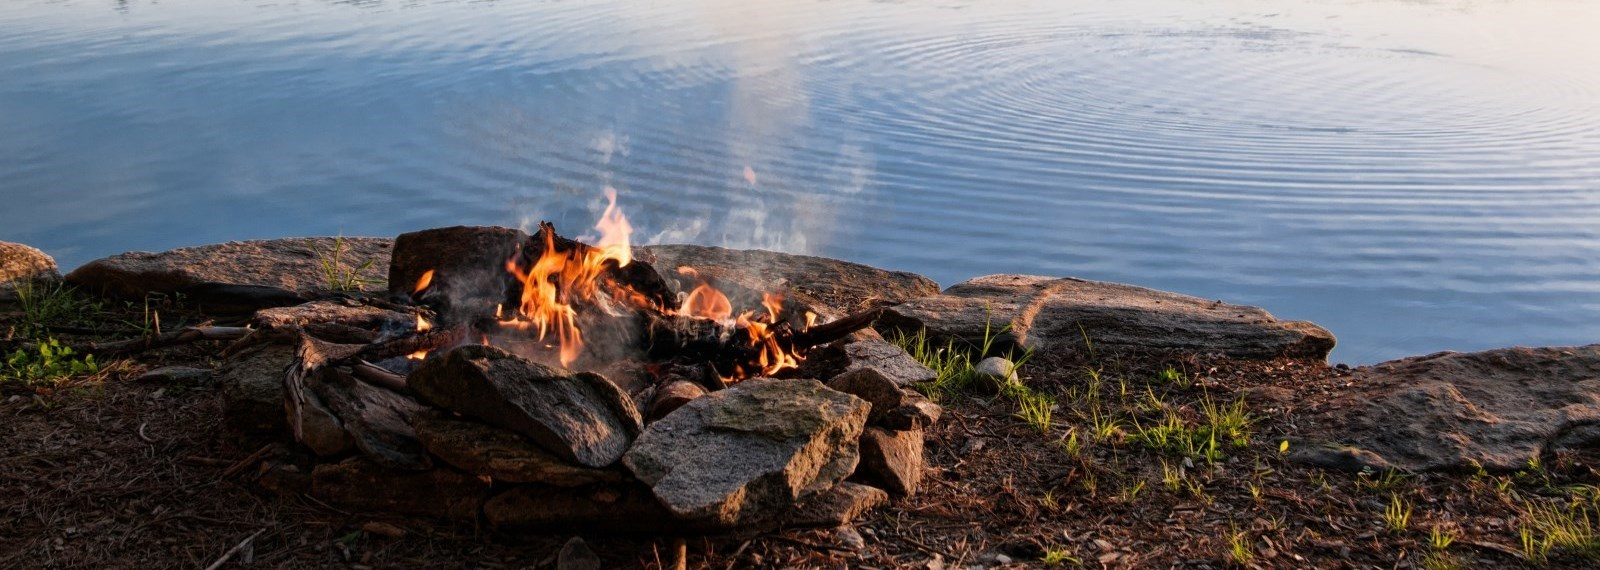 Fire-burning-in-fire-pit-on-lakeside